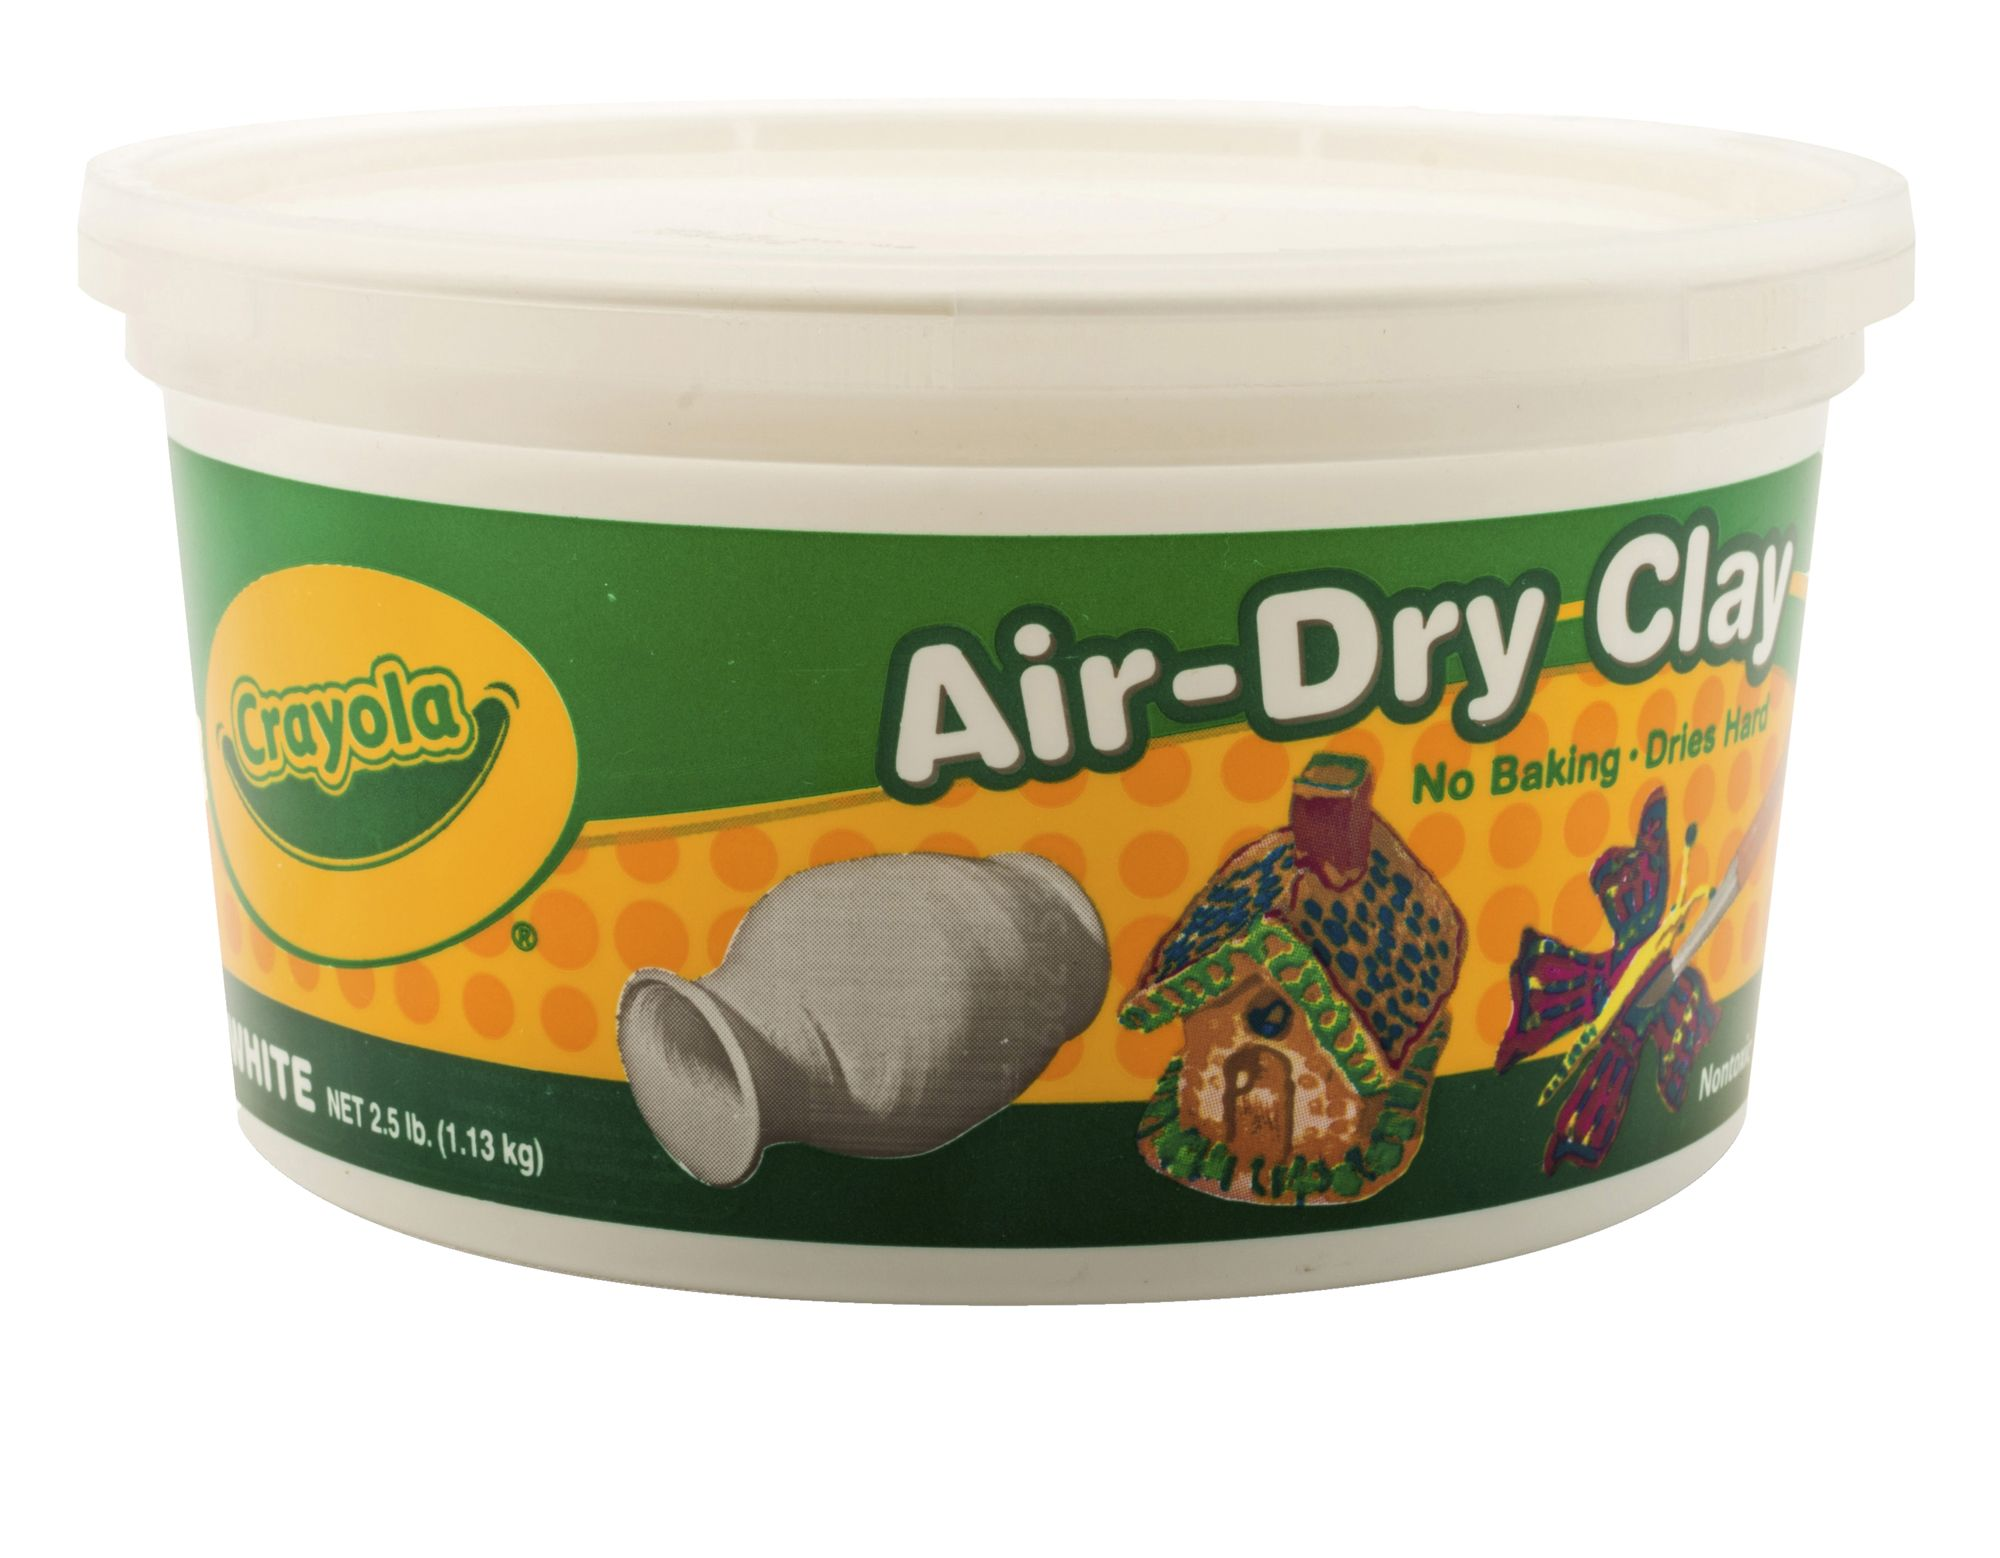 Crayola Air-Dry Clay, White, 2.5 Lb Resealable Bucket ...